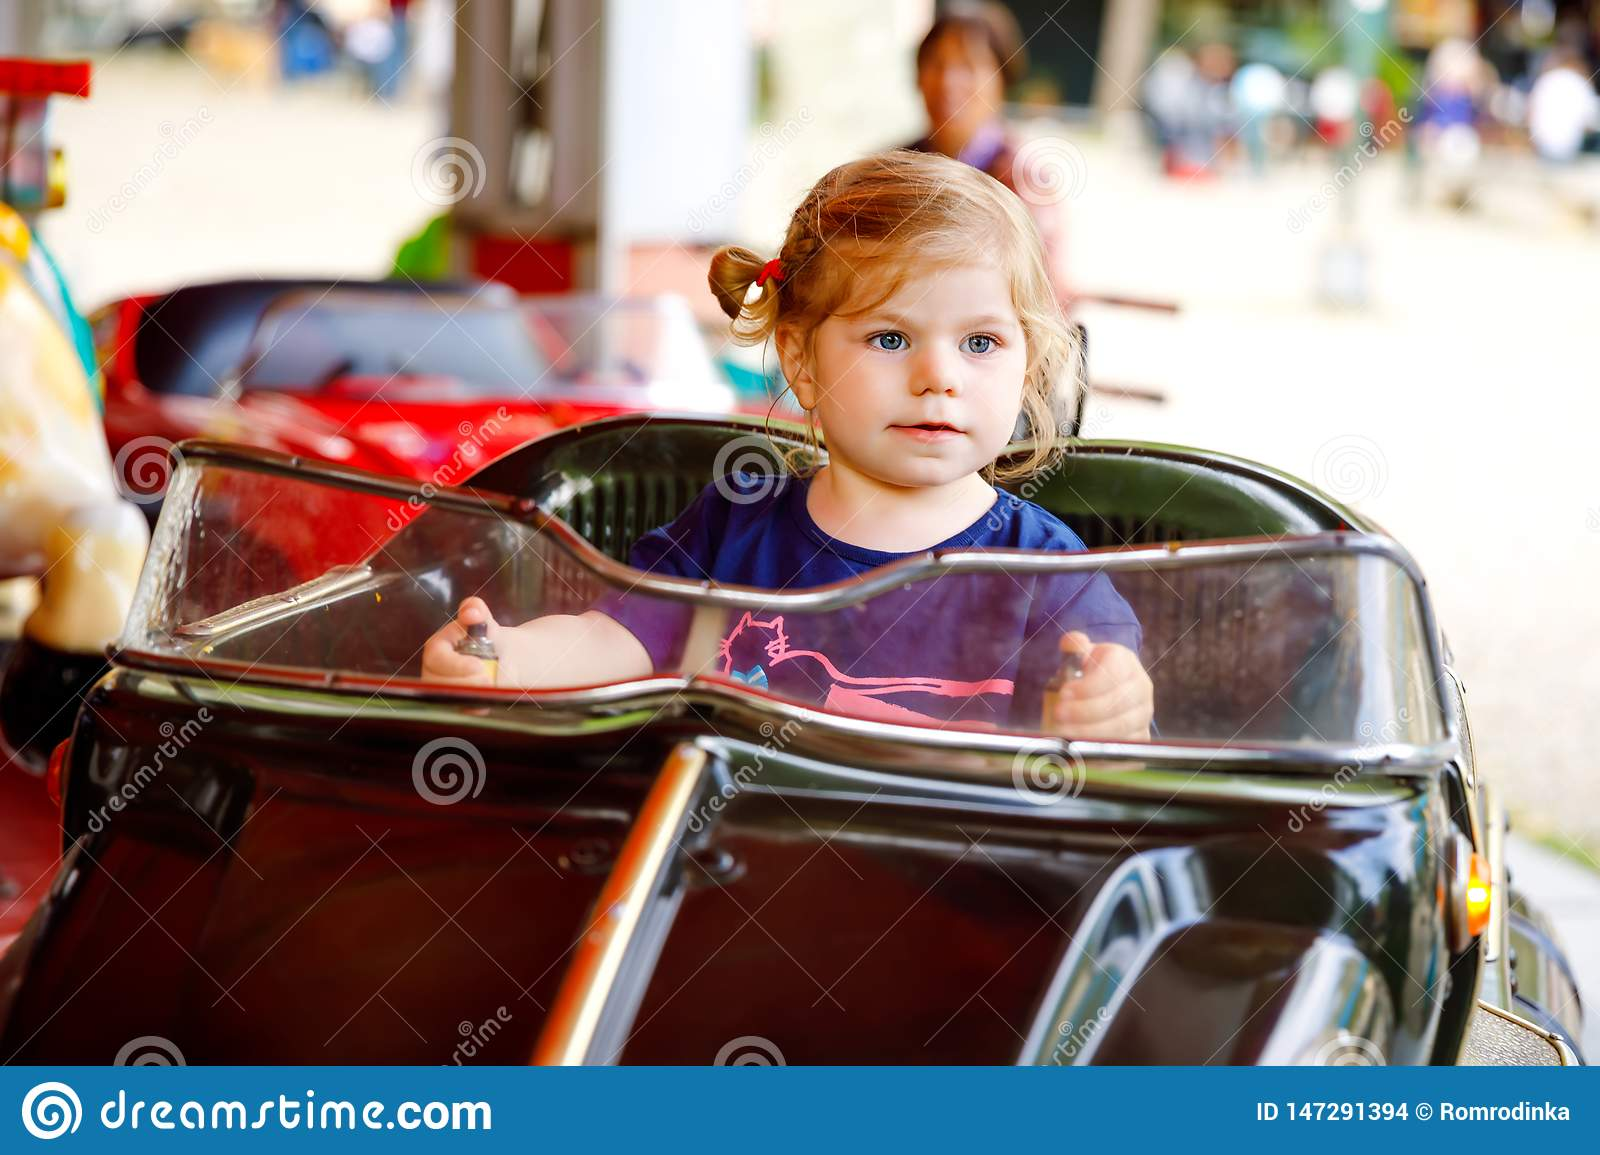 Adorable little toddler girl riding on funny car on roundabout carousel in amusement park. Happy healthy baby child